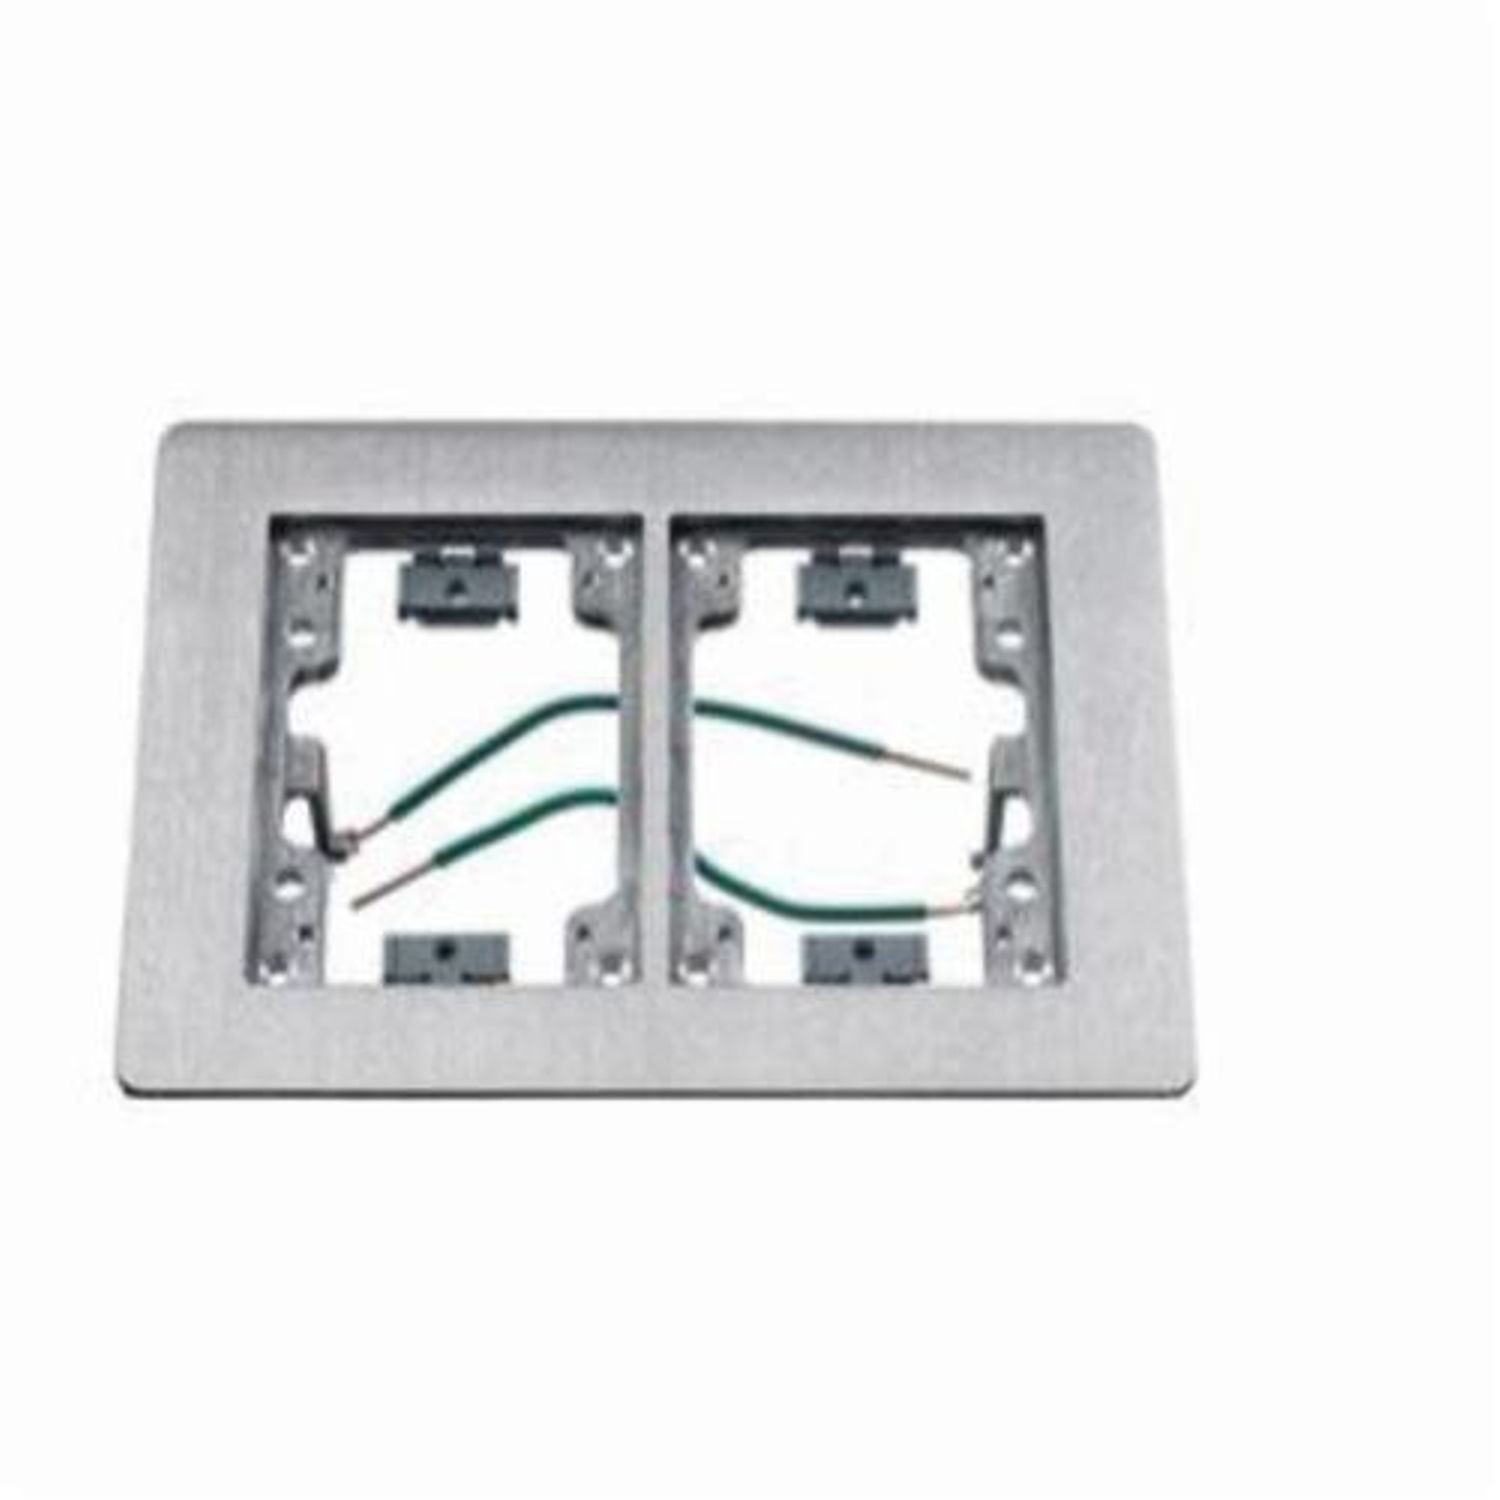 Premise Wiring Sa3084w Rectangular Floor Flange For Use With Flush Box Aluminum